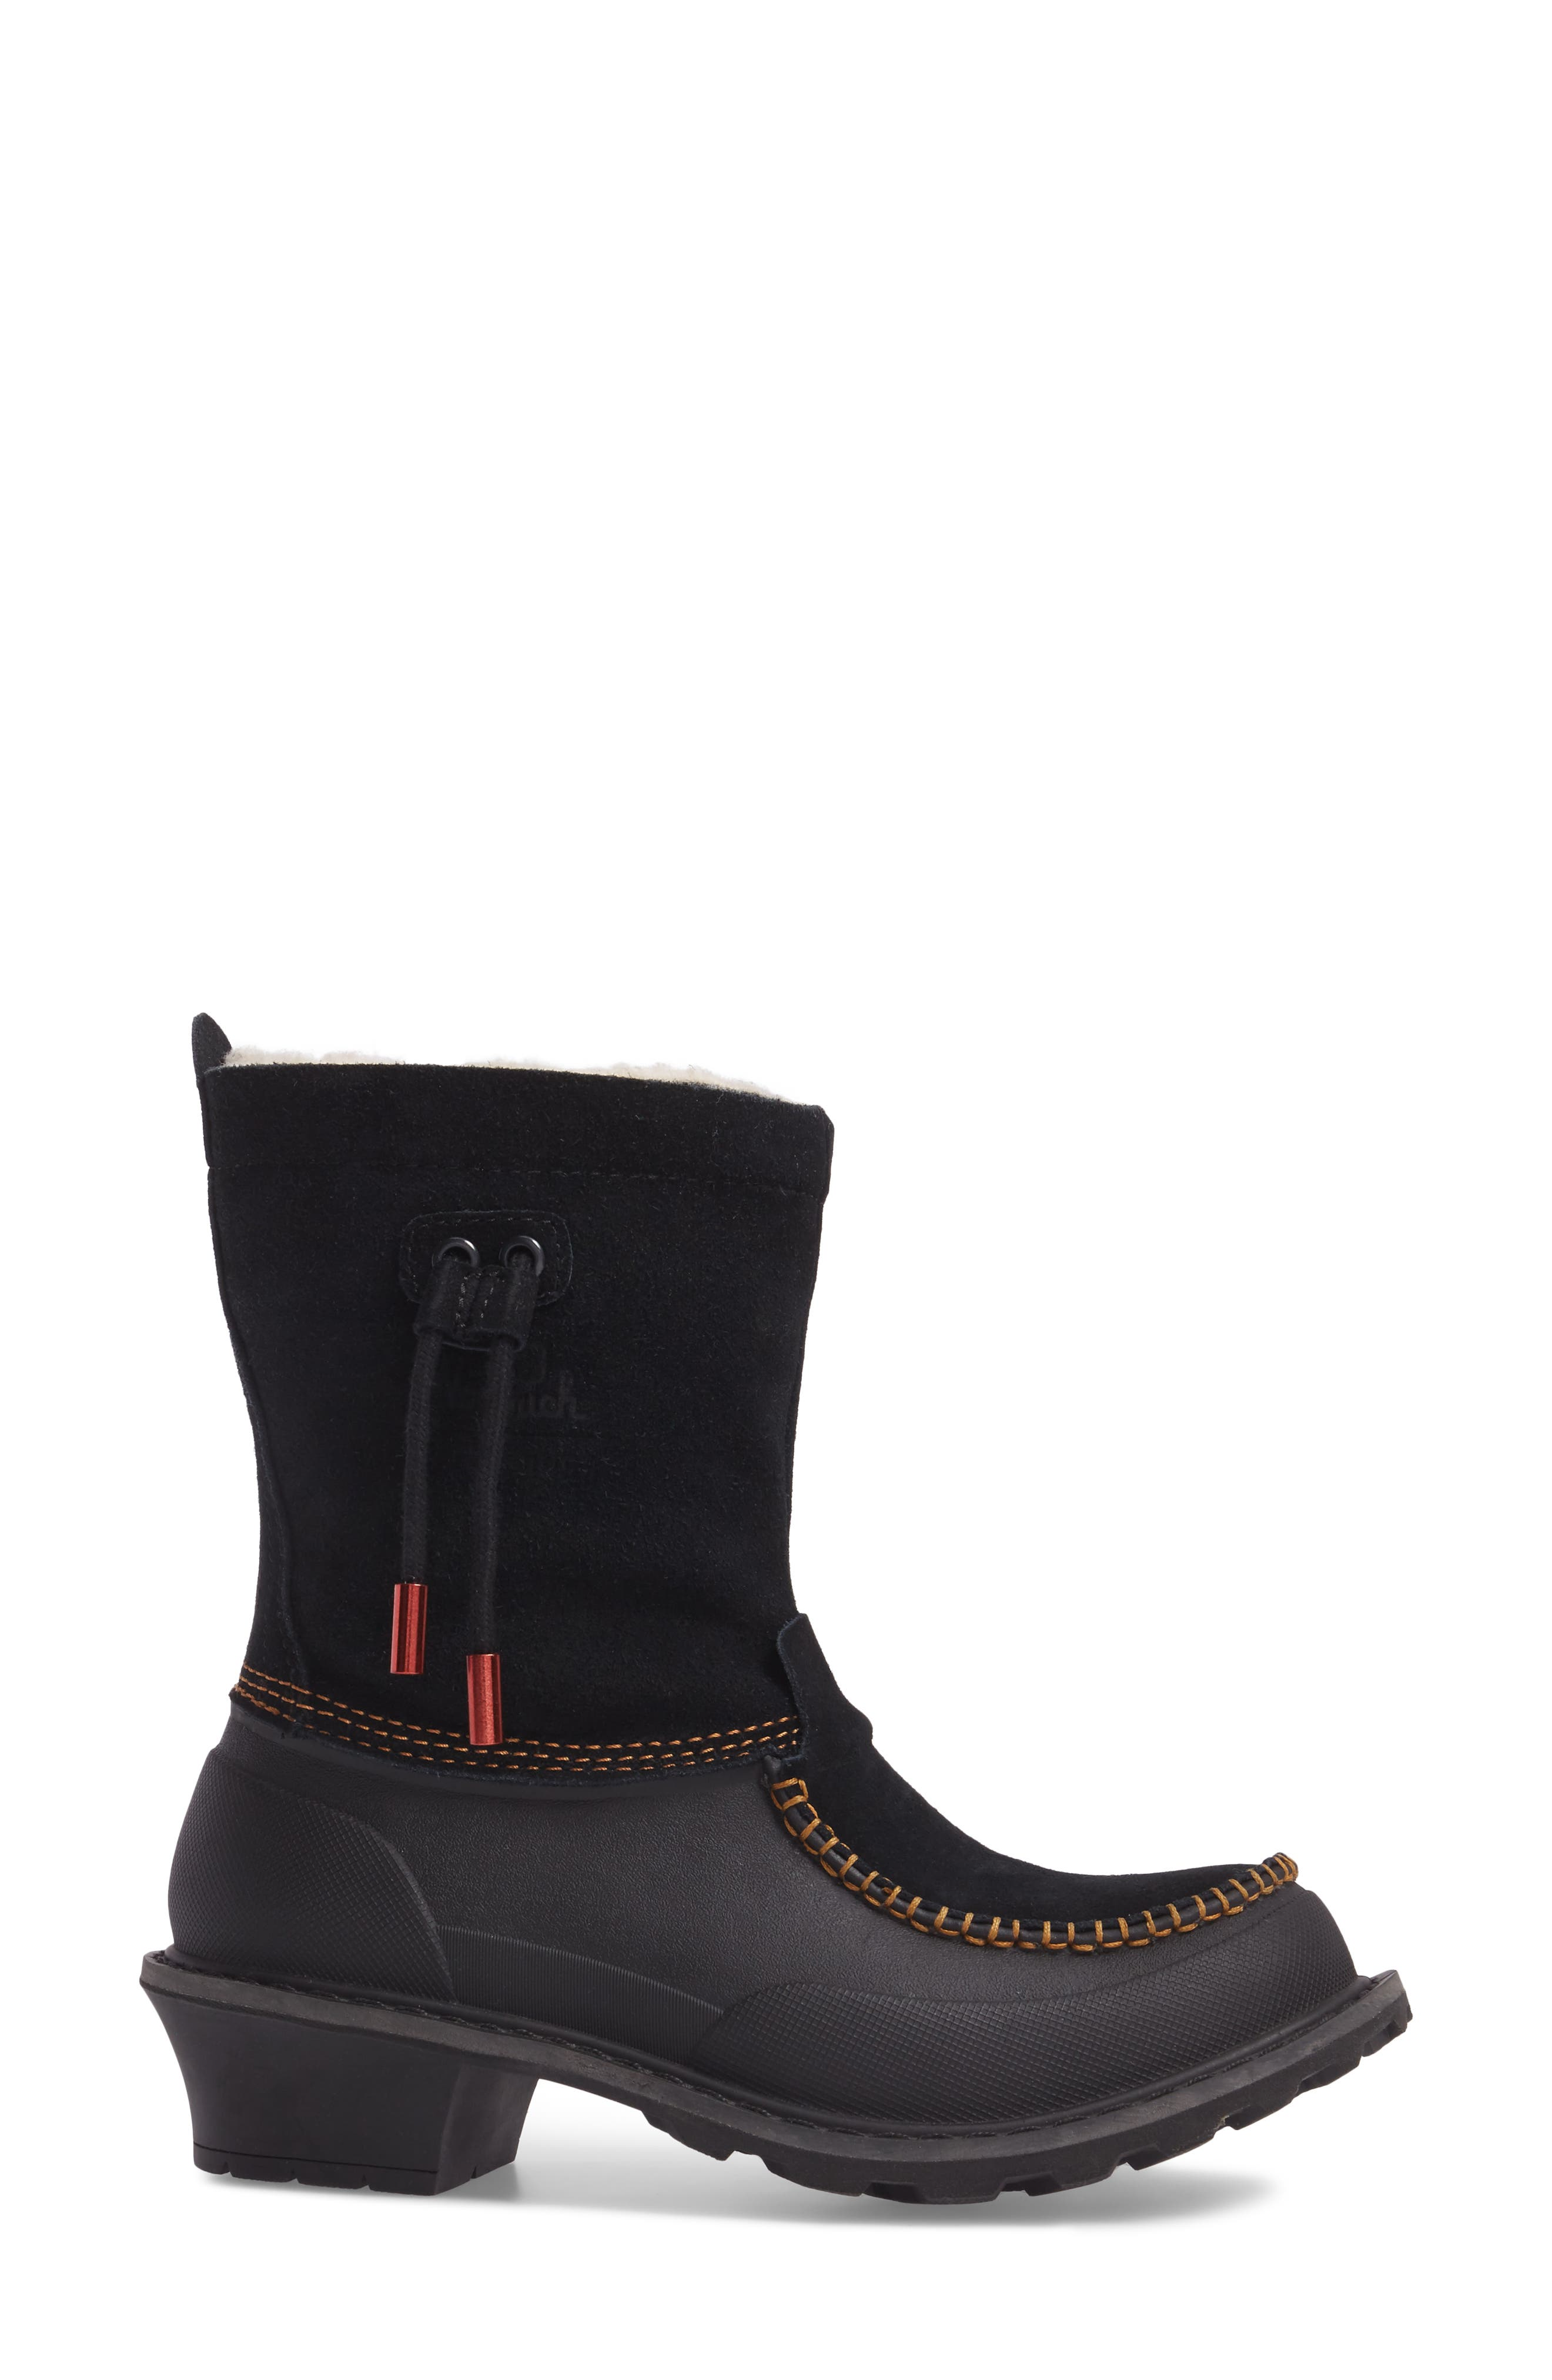 Fully Wooly Waterproof Winter Boot,                             Alternate thumbnail 3, color,                             Black Leather